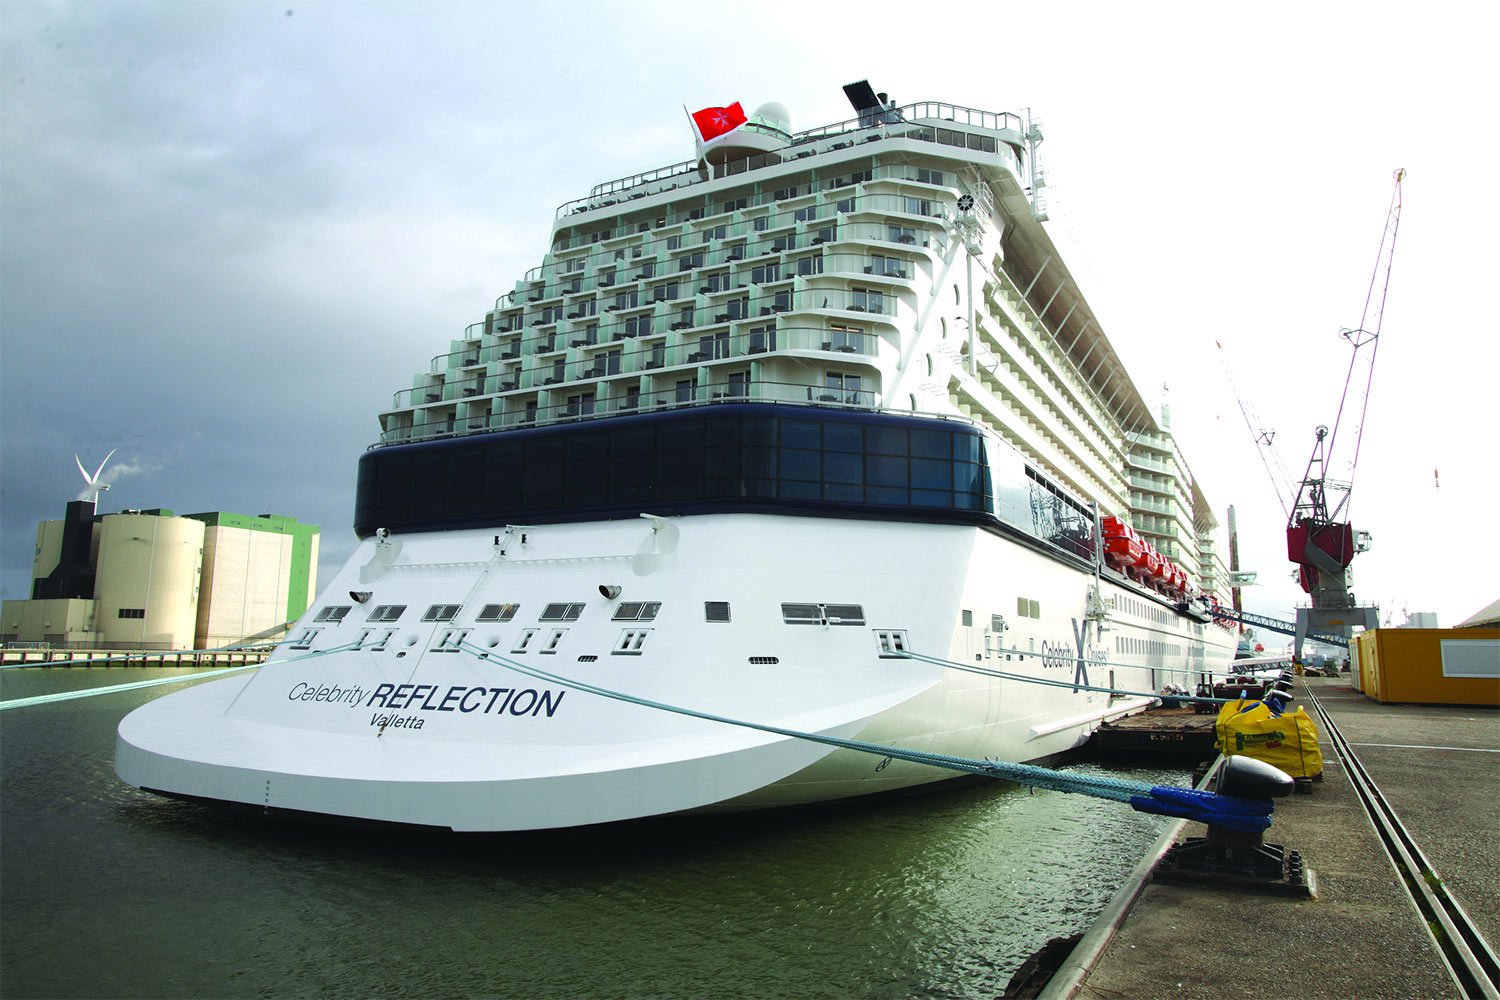 Celebrity Cruises 'game-changing' agent incentive